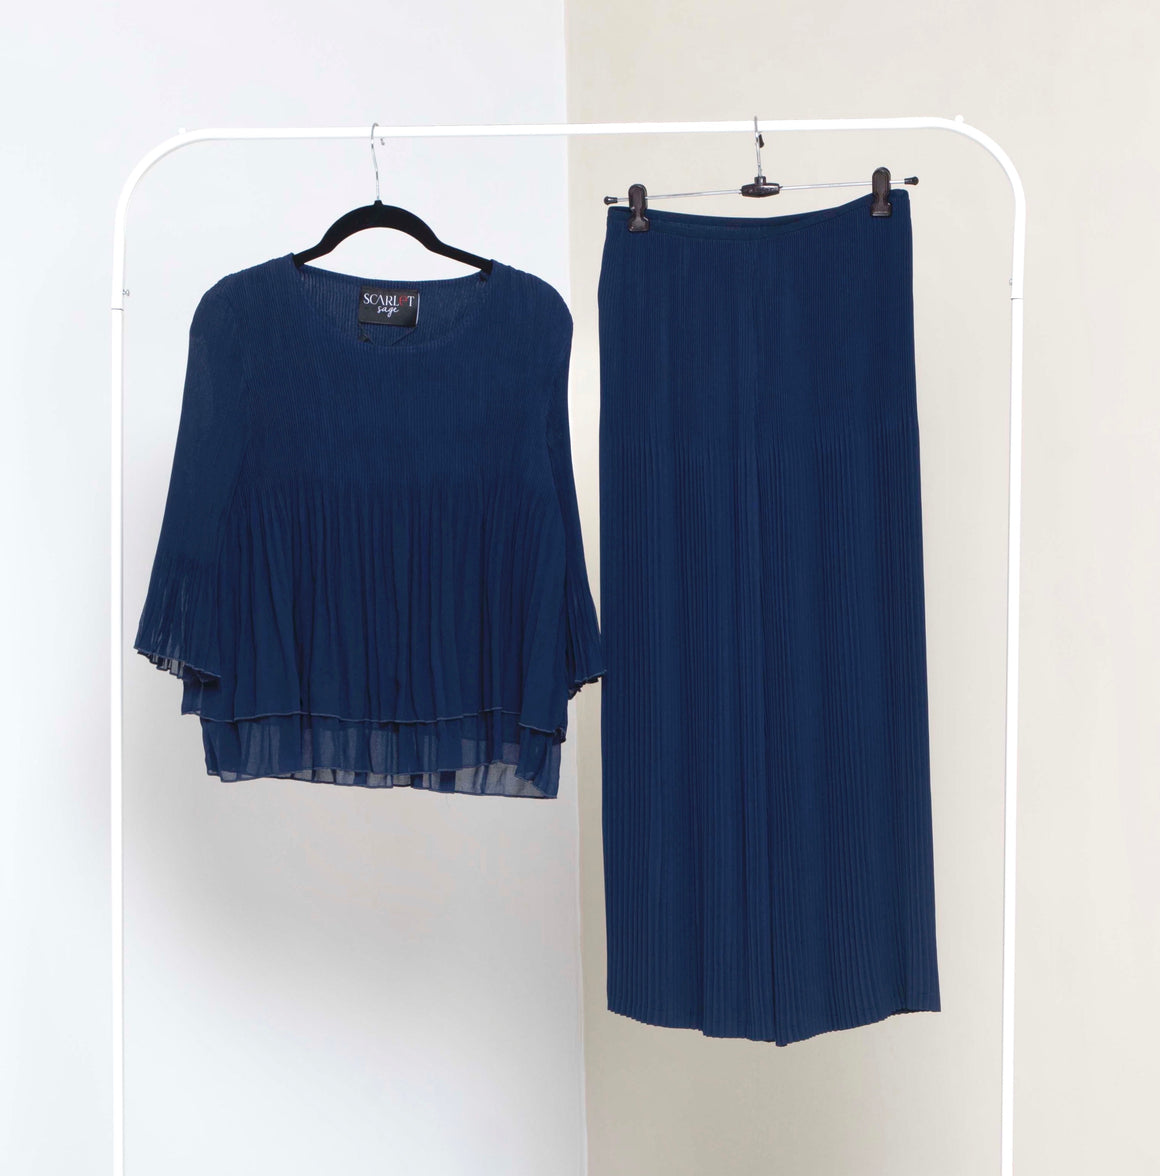 Layered Top  Co-ord Set - Navy Blue